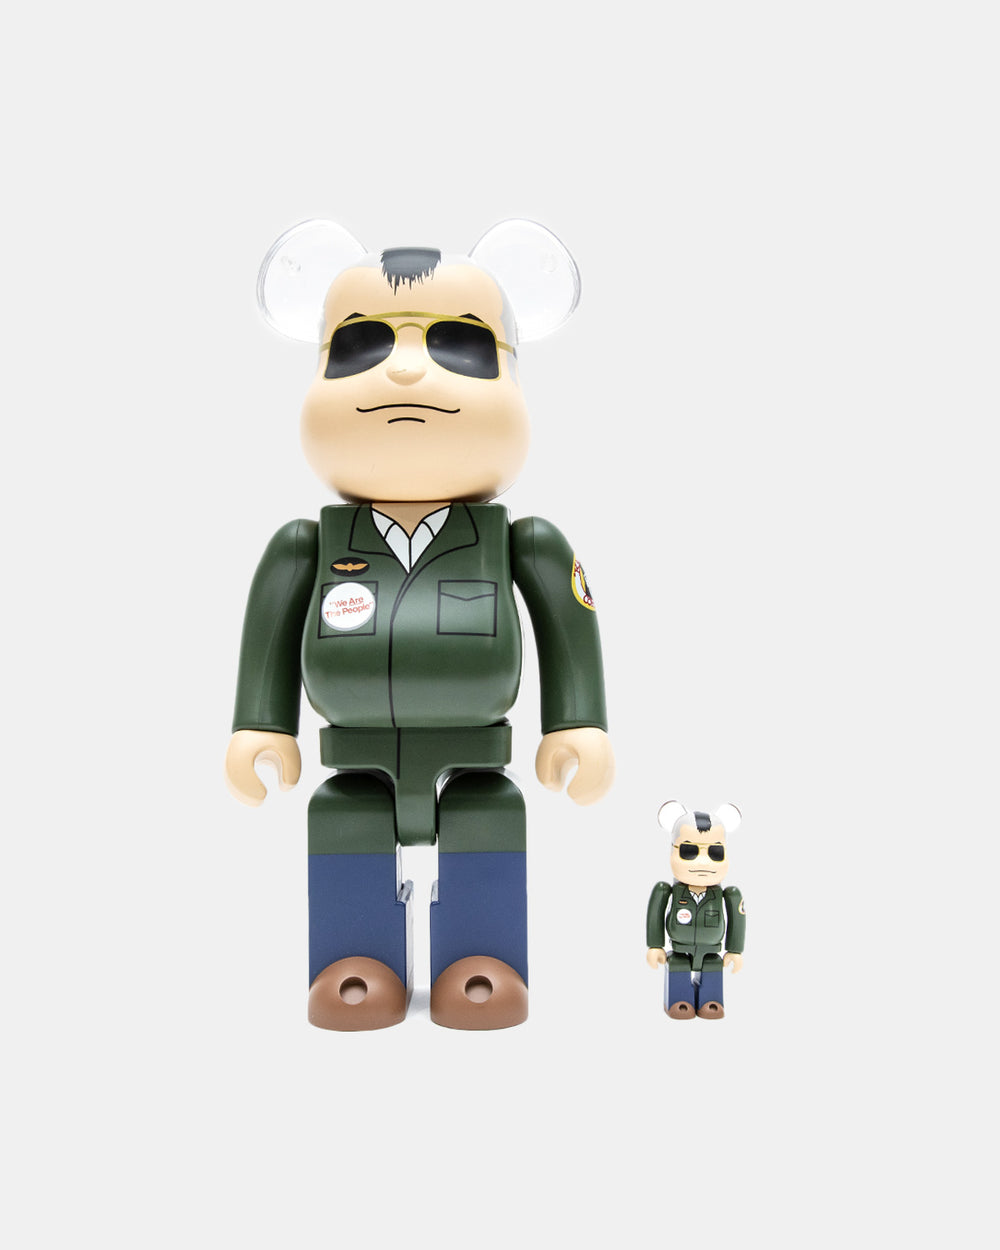 Medicom Toy - Taxi Driver Travis Bickle 100%/400% Be@rbrick Set (Olive)